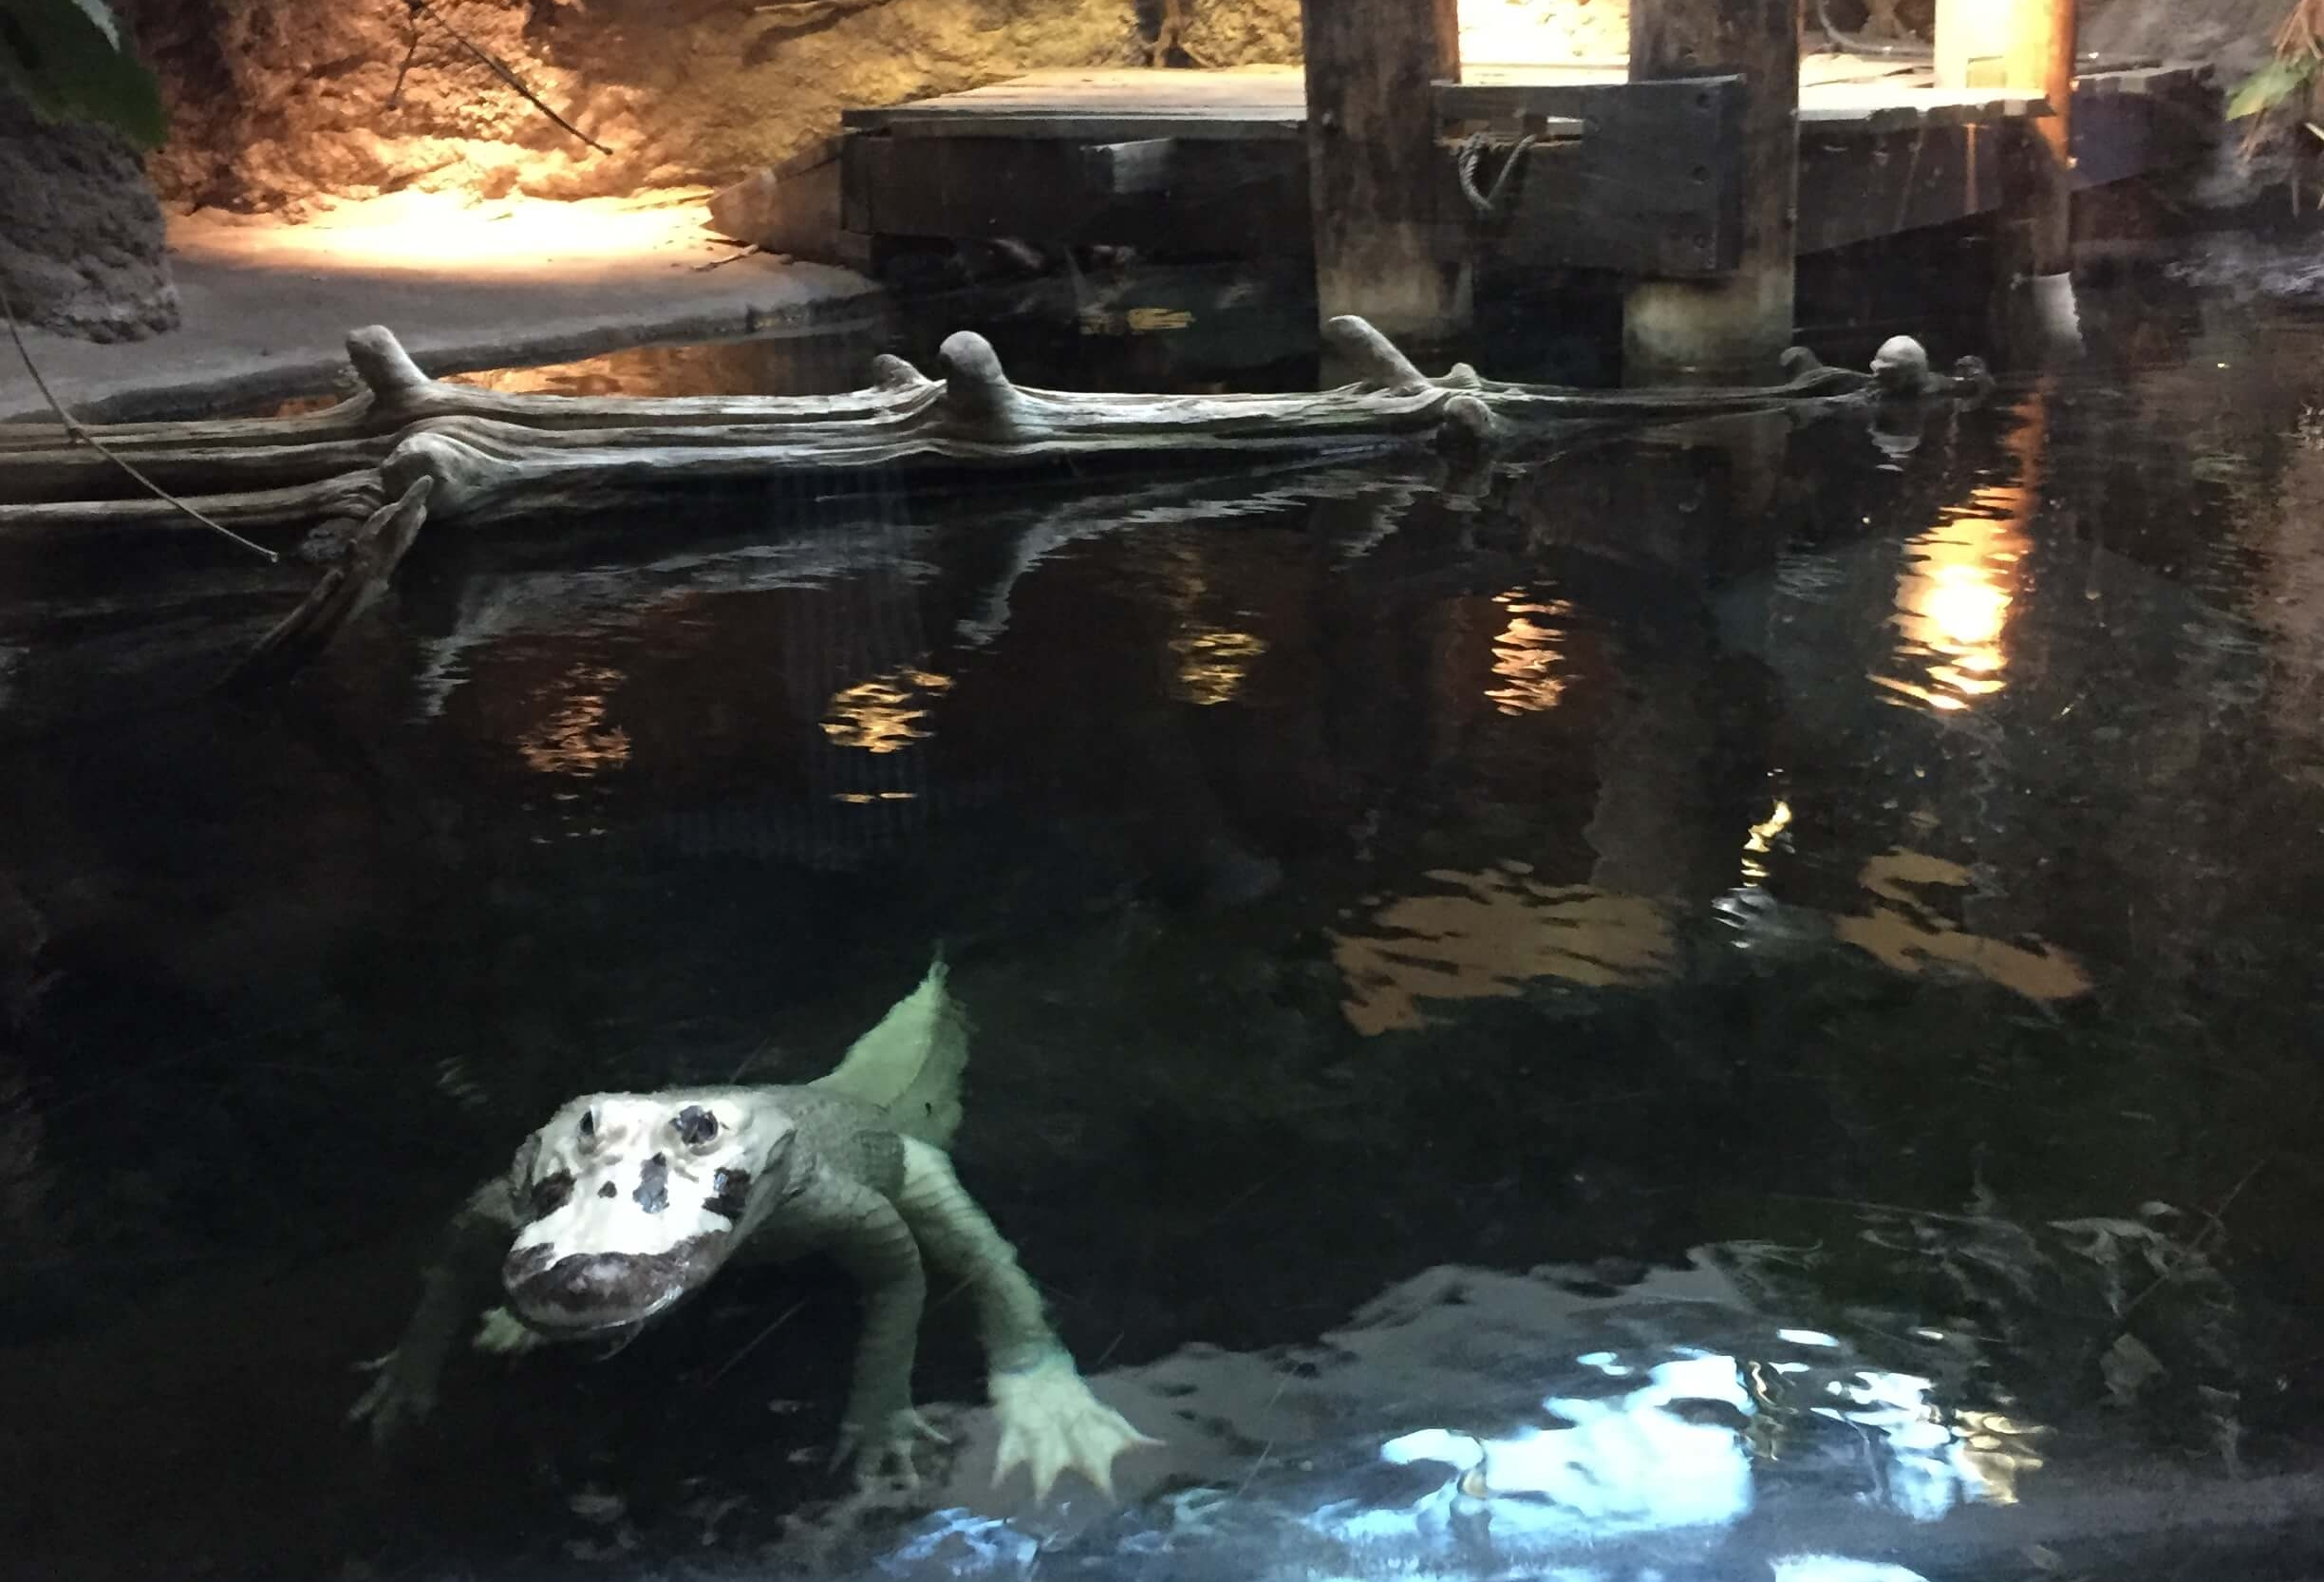 An albino alligator at the Audubon Aquarium of the Americas. #5 in Best Things to Do in the French Quarter.